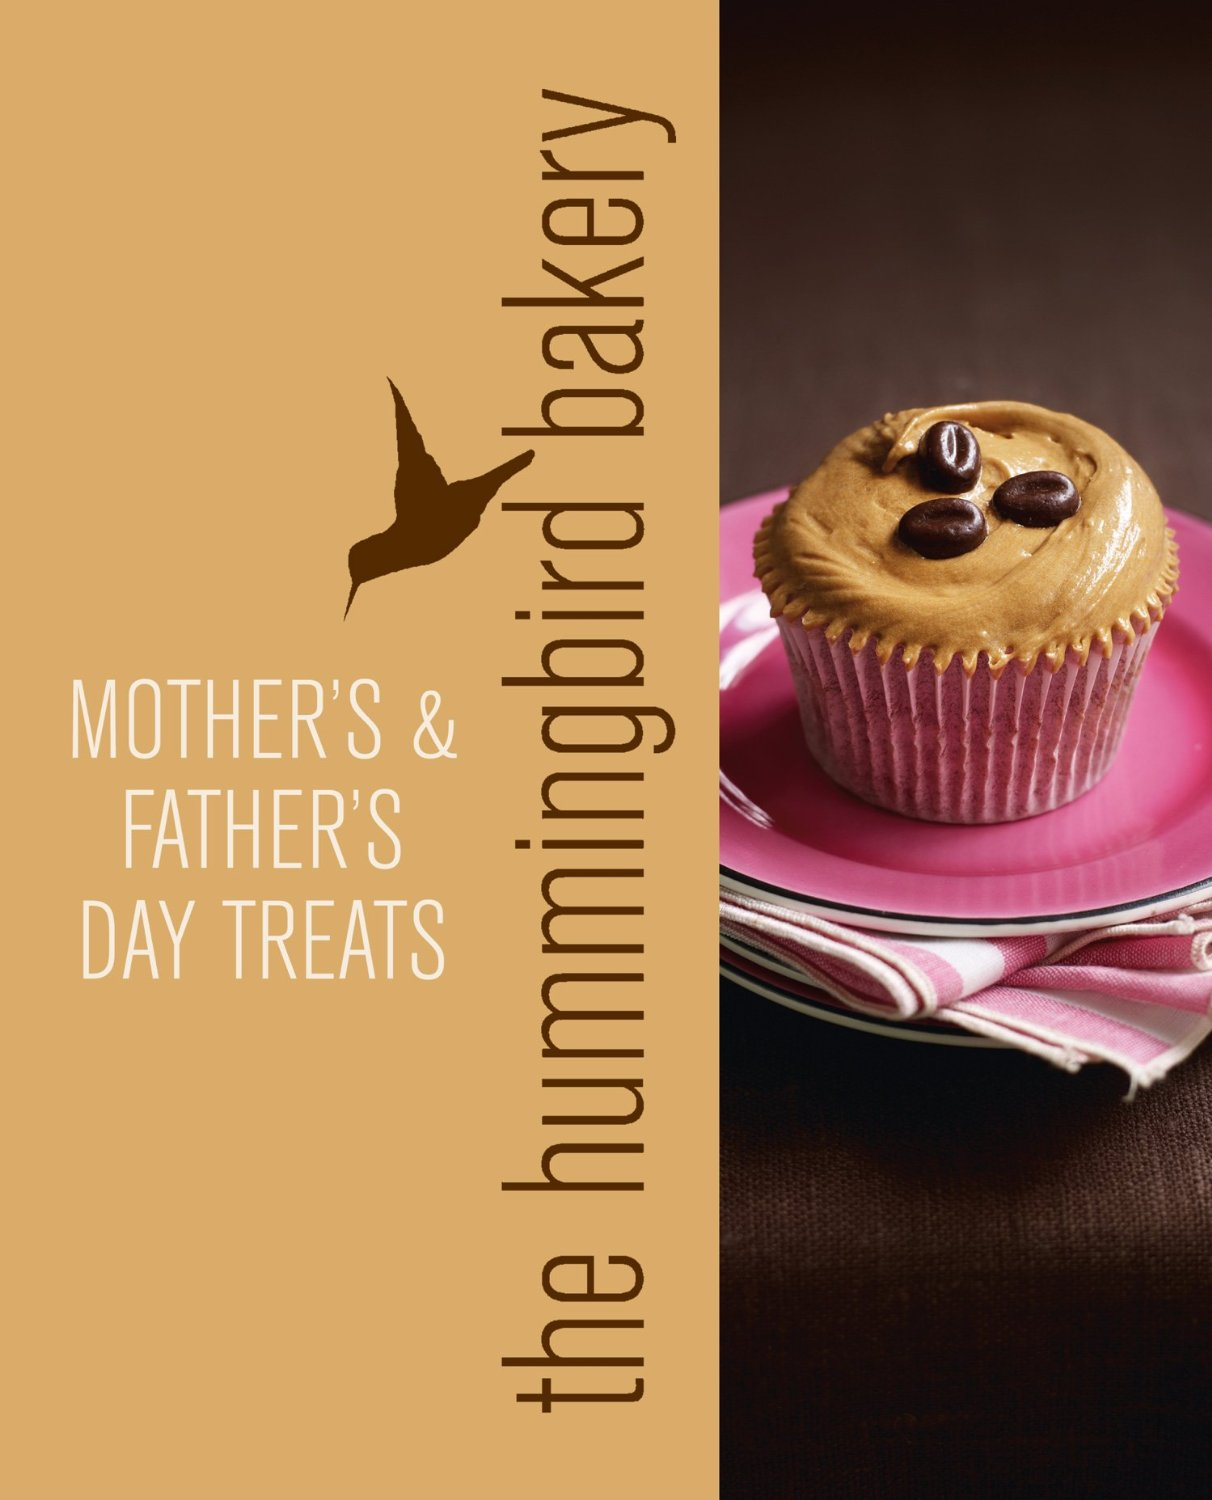 Hummingbird Bakery Mother'S And Father'S Day Treats